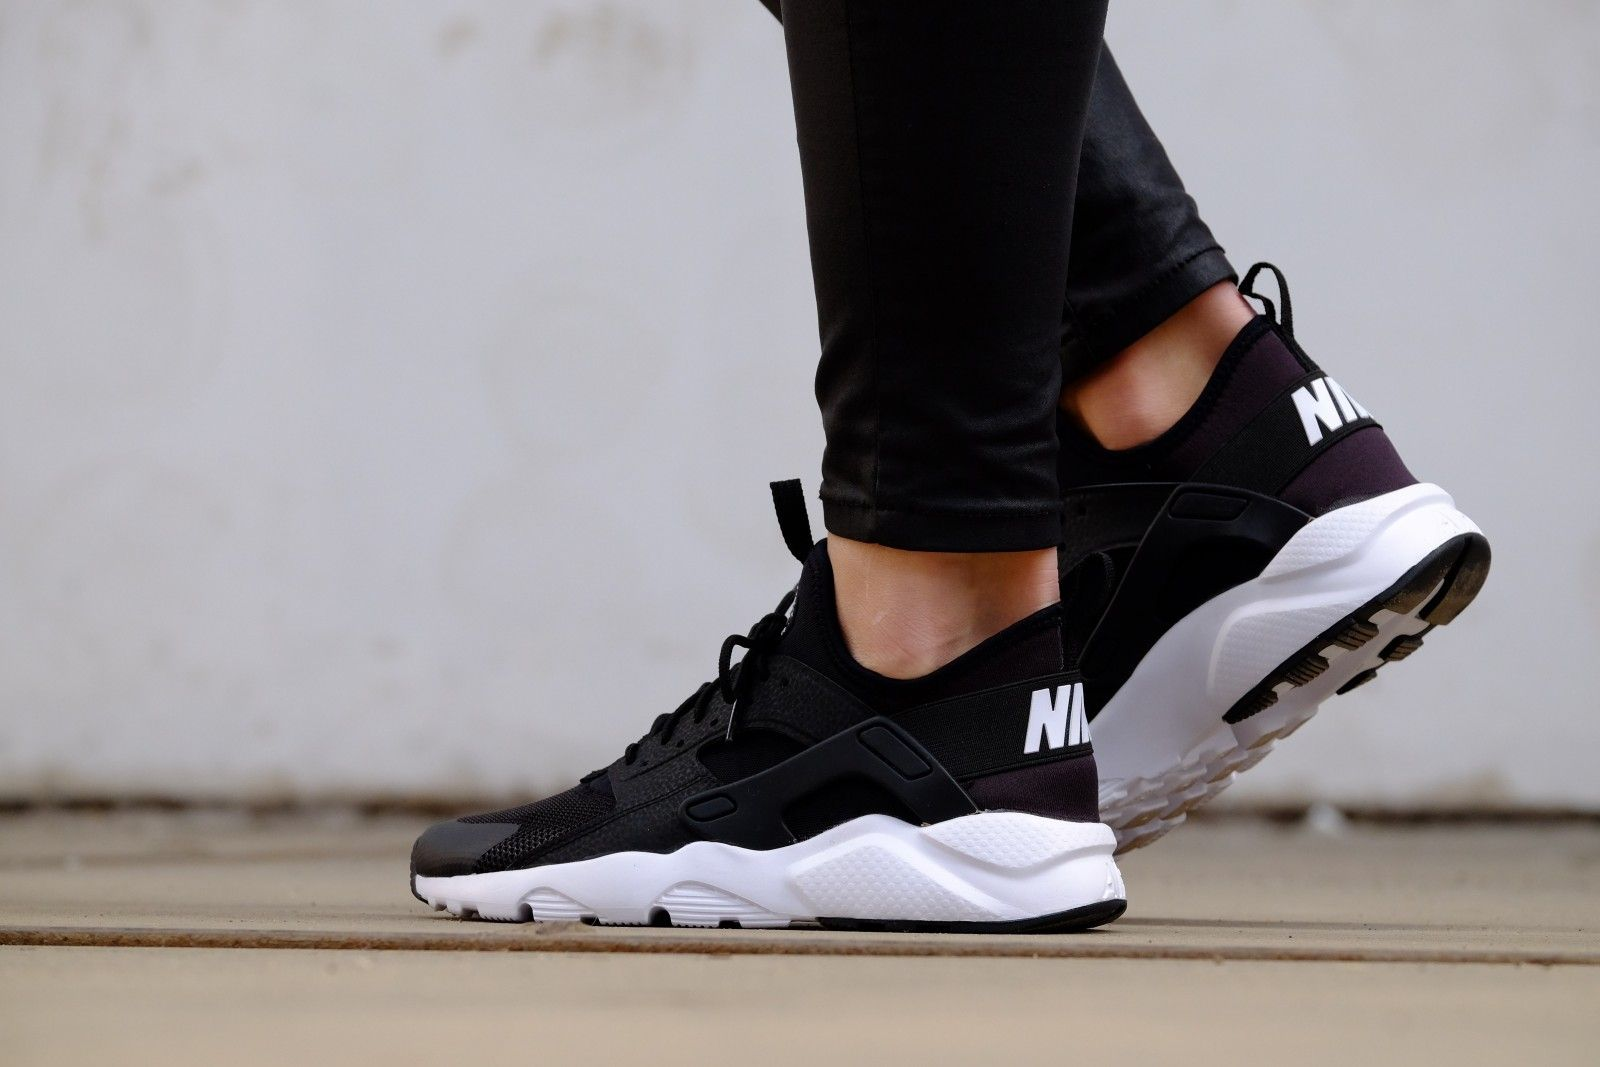 3a61f097fc9 Nike Air Huarache Run Ultra GS Black  White - 847569-002